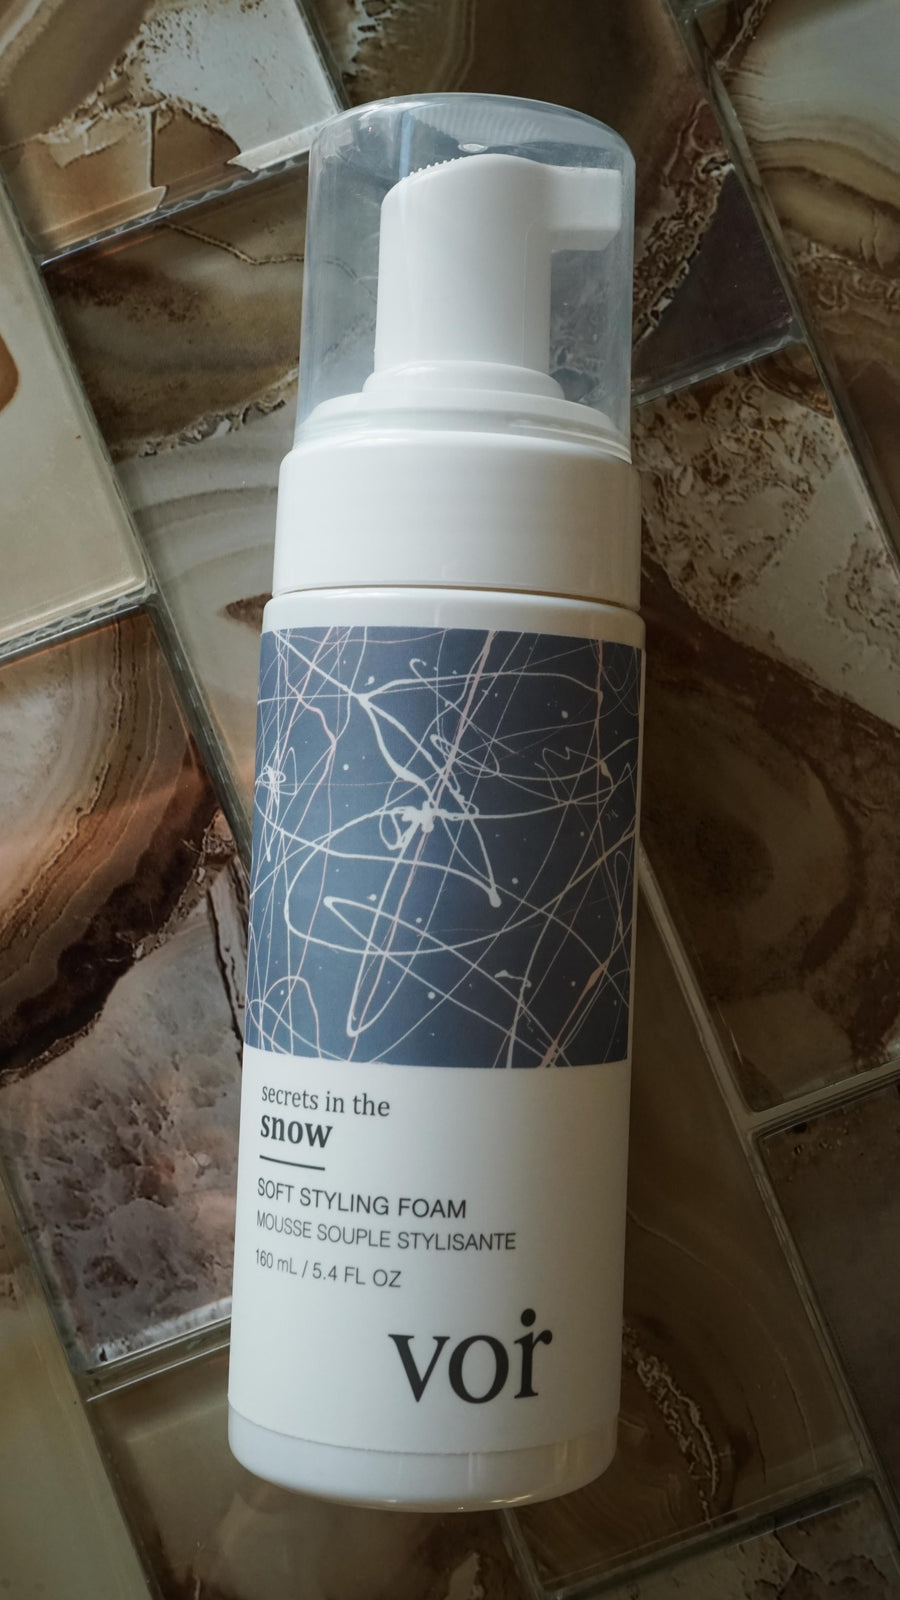 Secrets in the Snow Soft Styling Foam by Voir Haircare